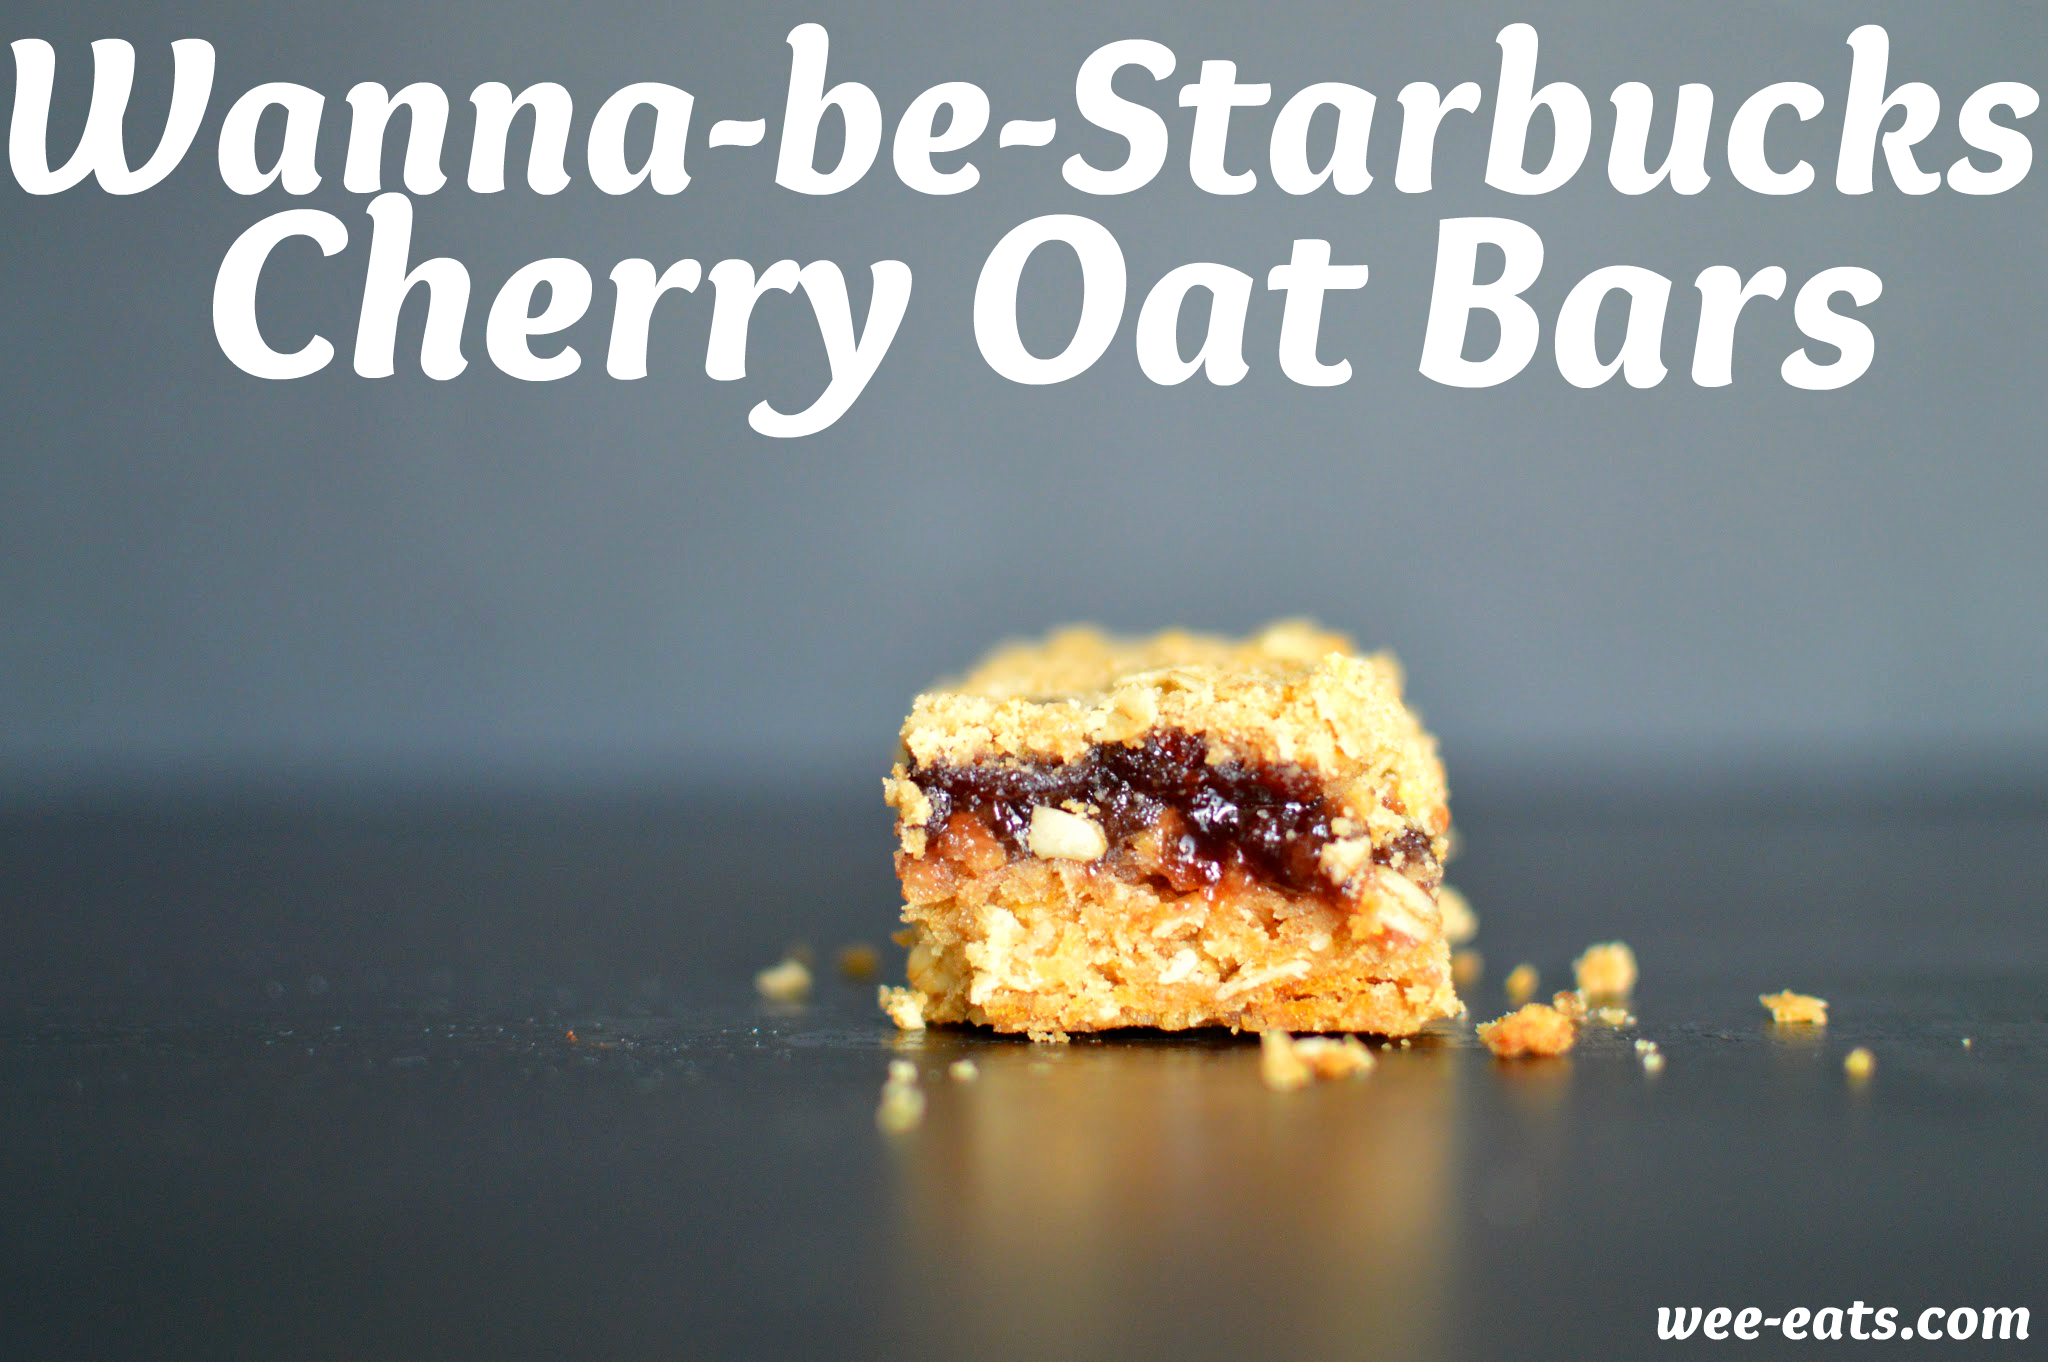 Starbucks Cherry Oat Bars | Wee-Eats.com